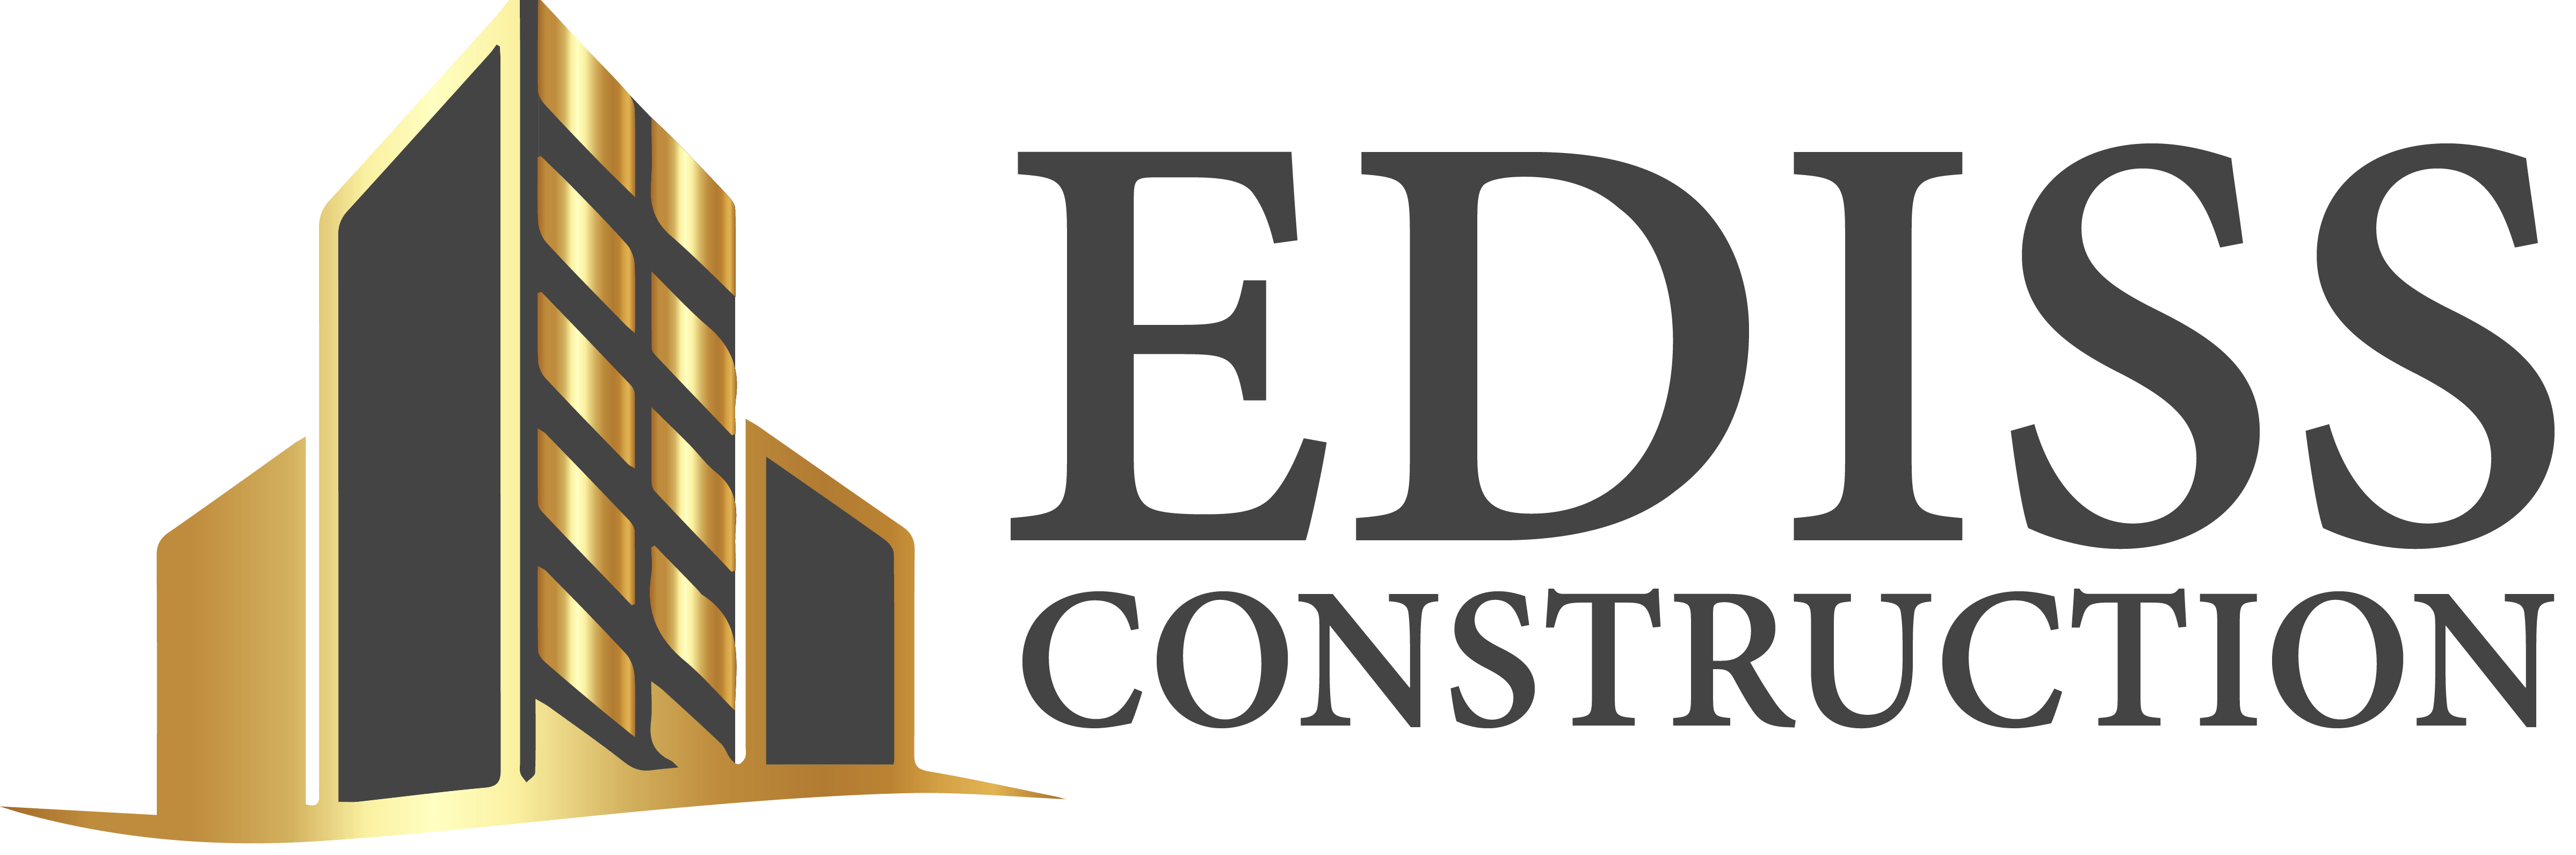 ediss construction 2017 ediss construction